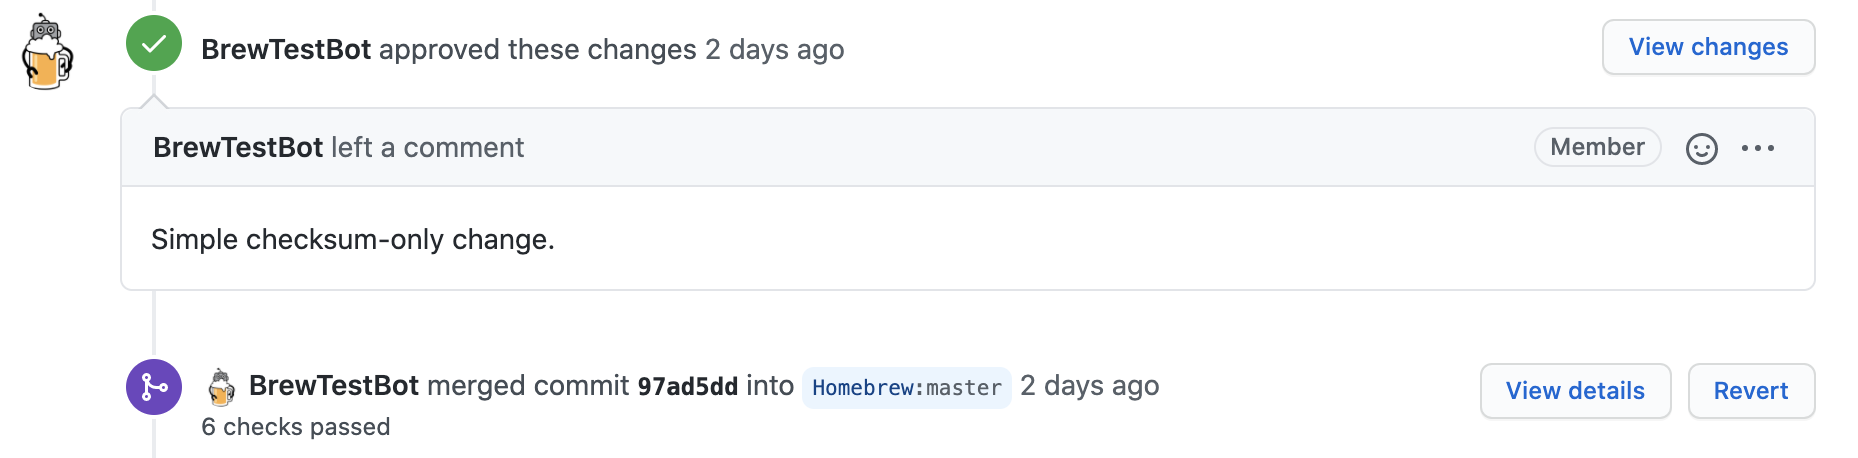 BrewTestBot merged the pull request